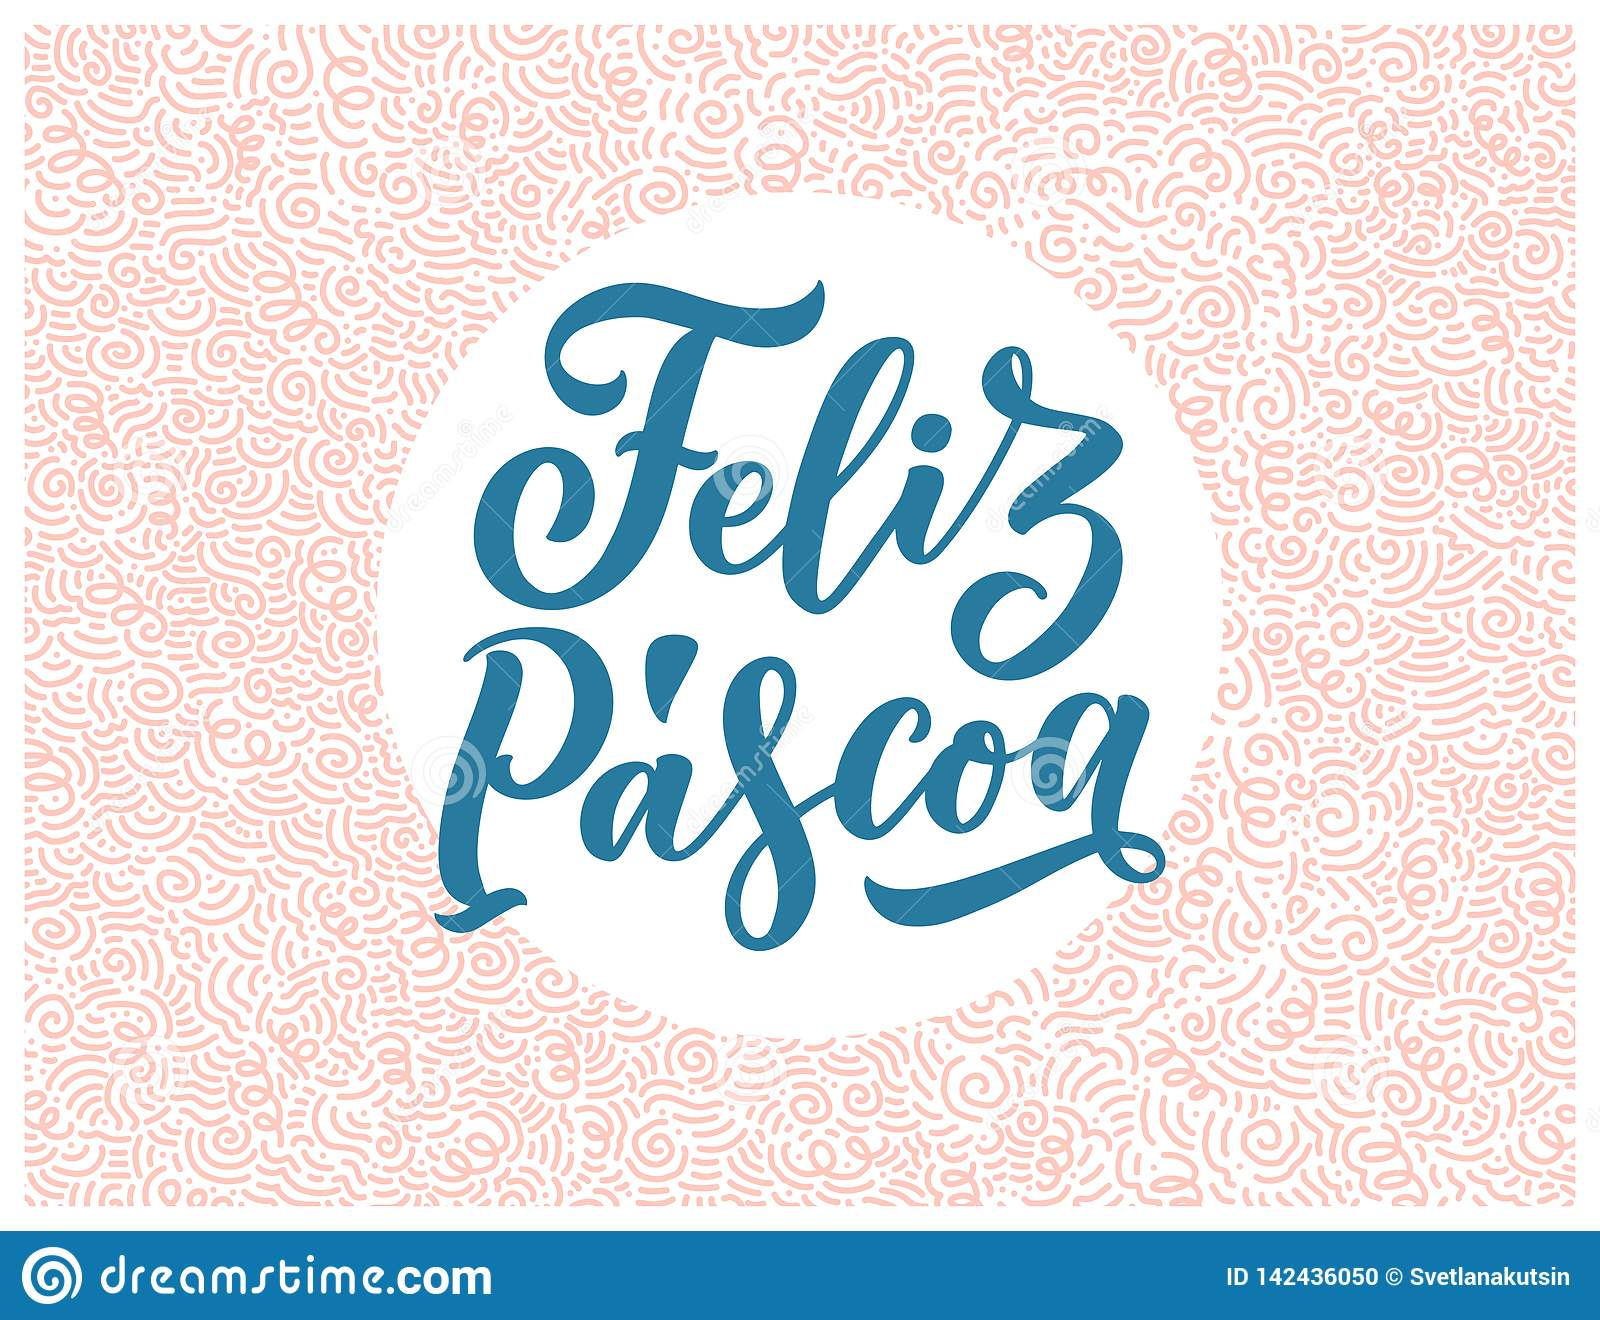 Calligraphy lettering for flyer design - Happy easter in Hispanic language. Vector illustration. Template banner, poster, greeting